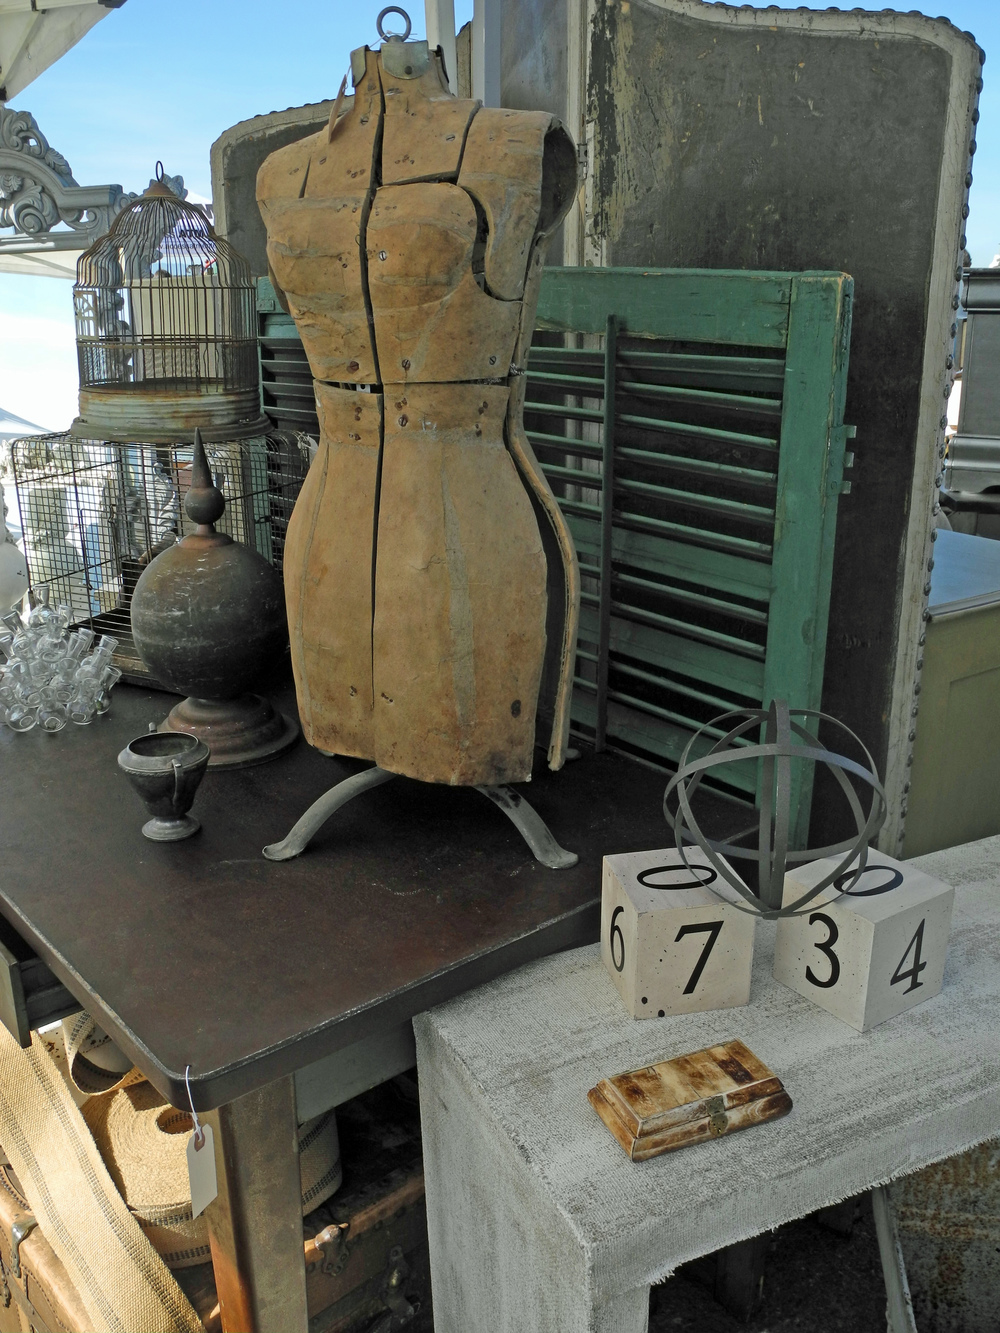 Mannequin and shutters become table-top display